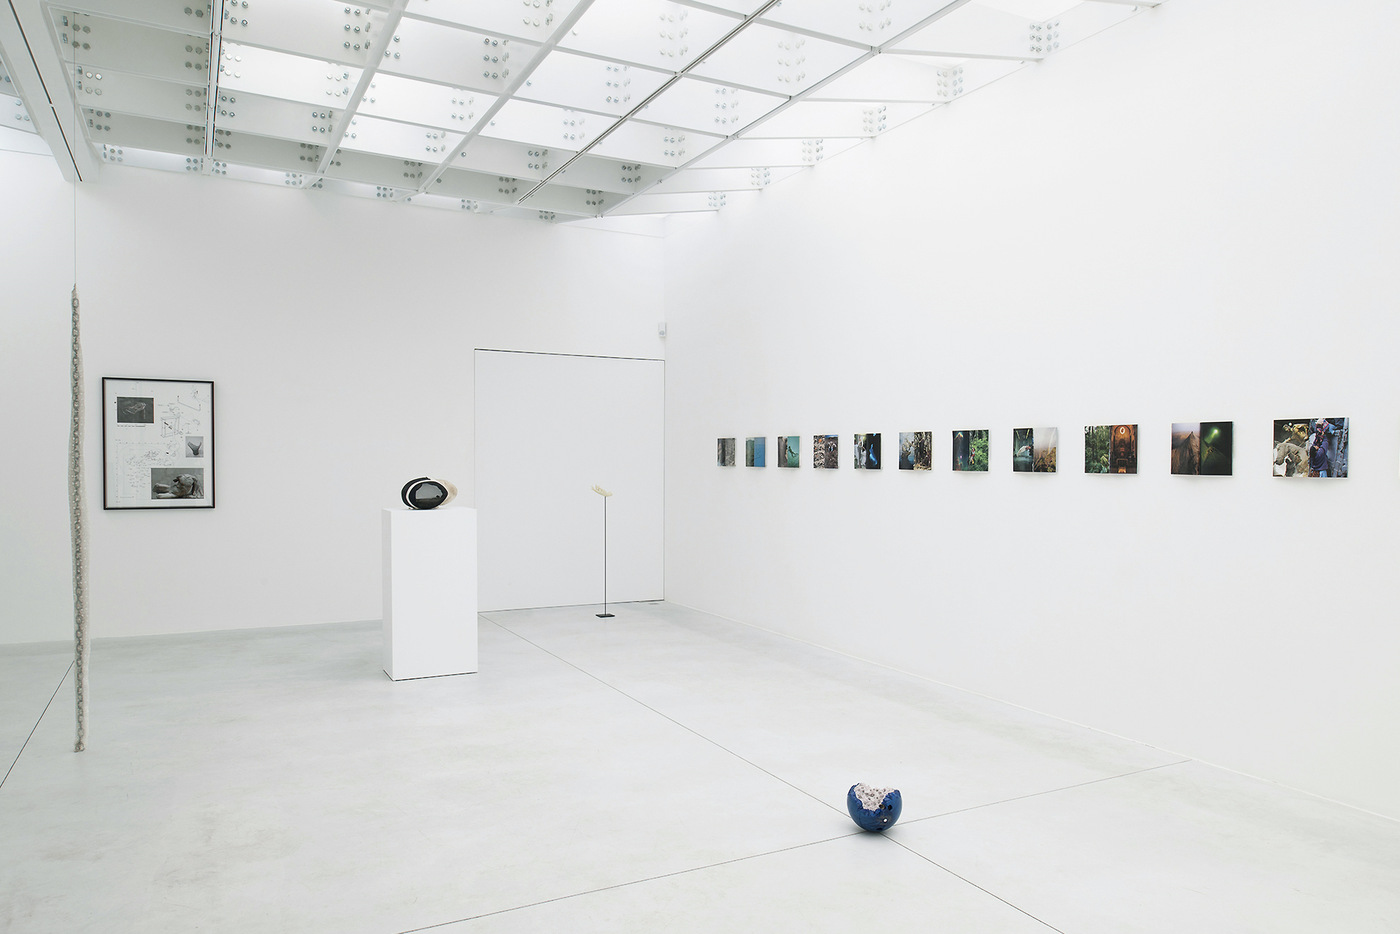 -Installation view- 002 (low)